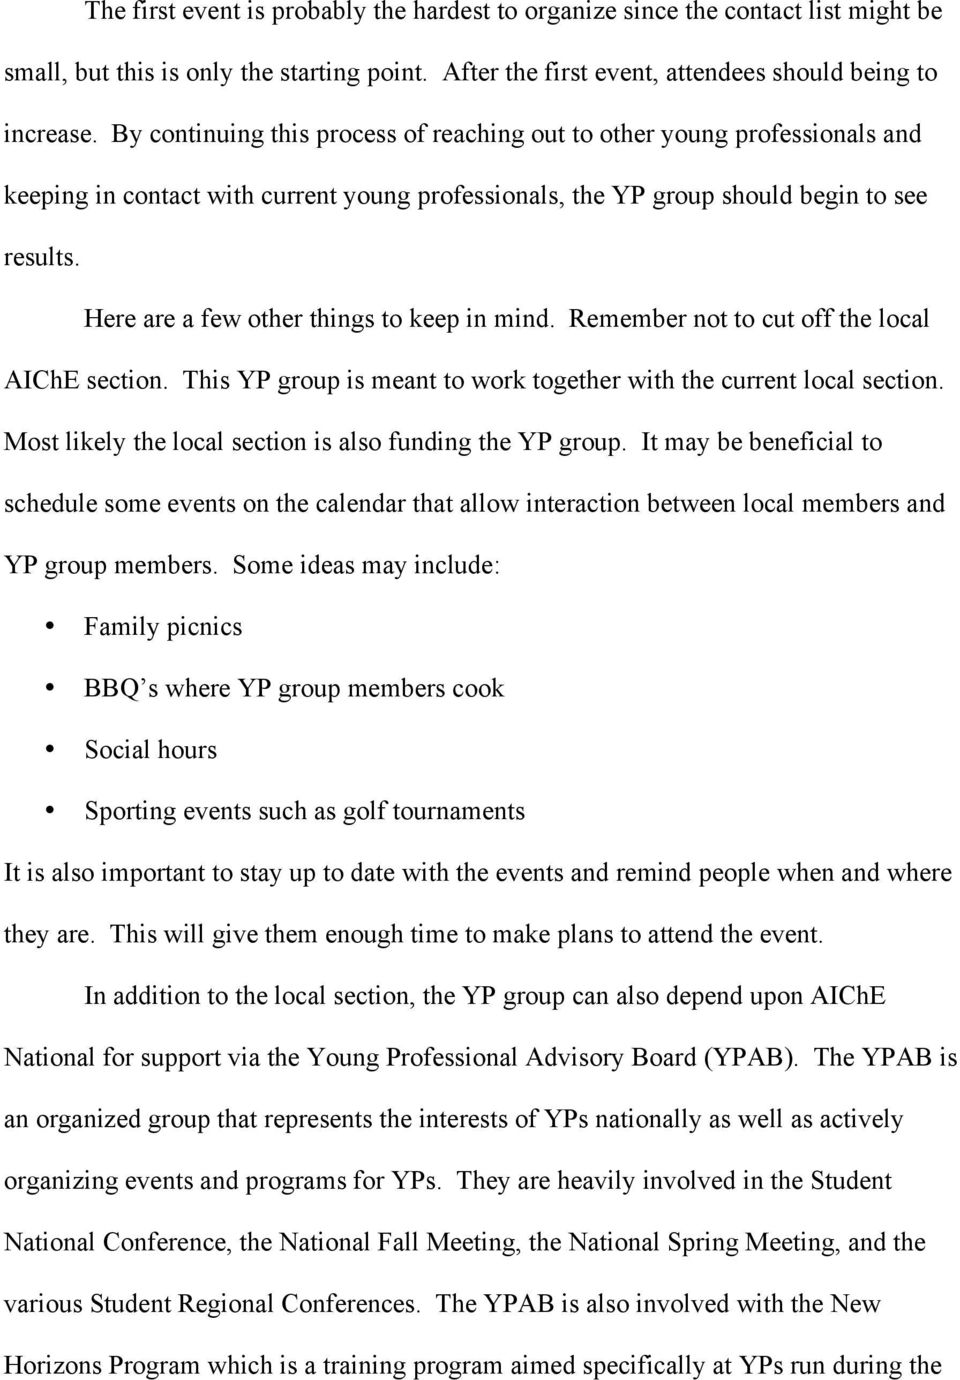 Here are a few other things to keep in mind. Remember not to cut off the local AIChE section. This YP group is meant to work together with the current local section.